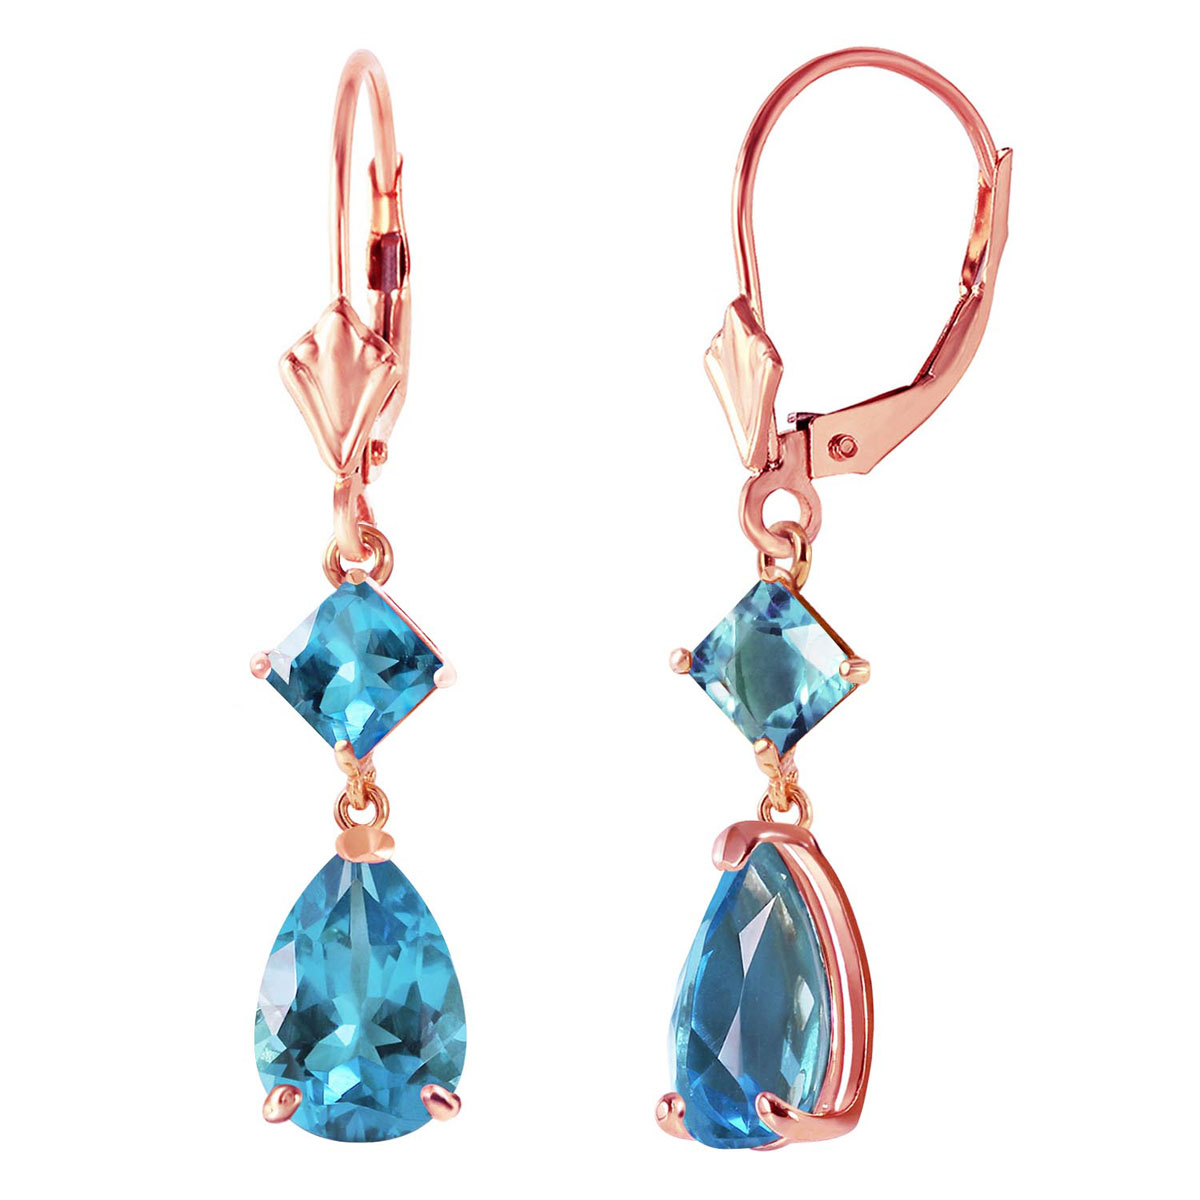 Peridot Droplet Earrings 4.5 ctw in 9ct Rose Gold